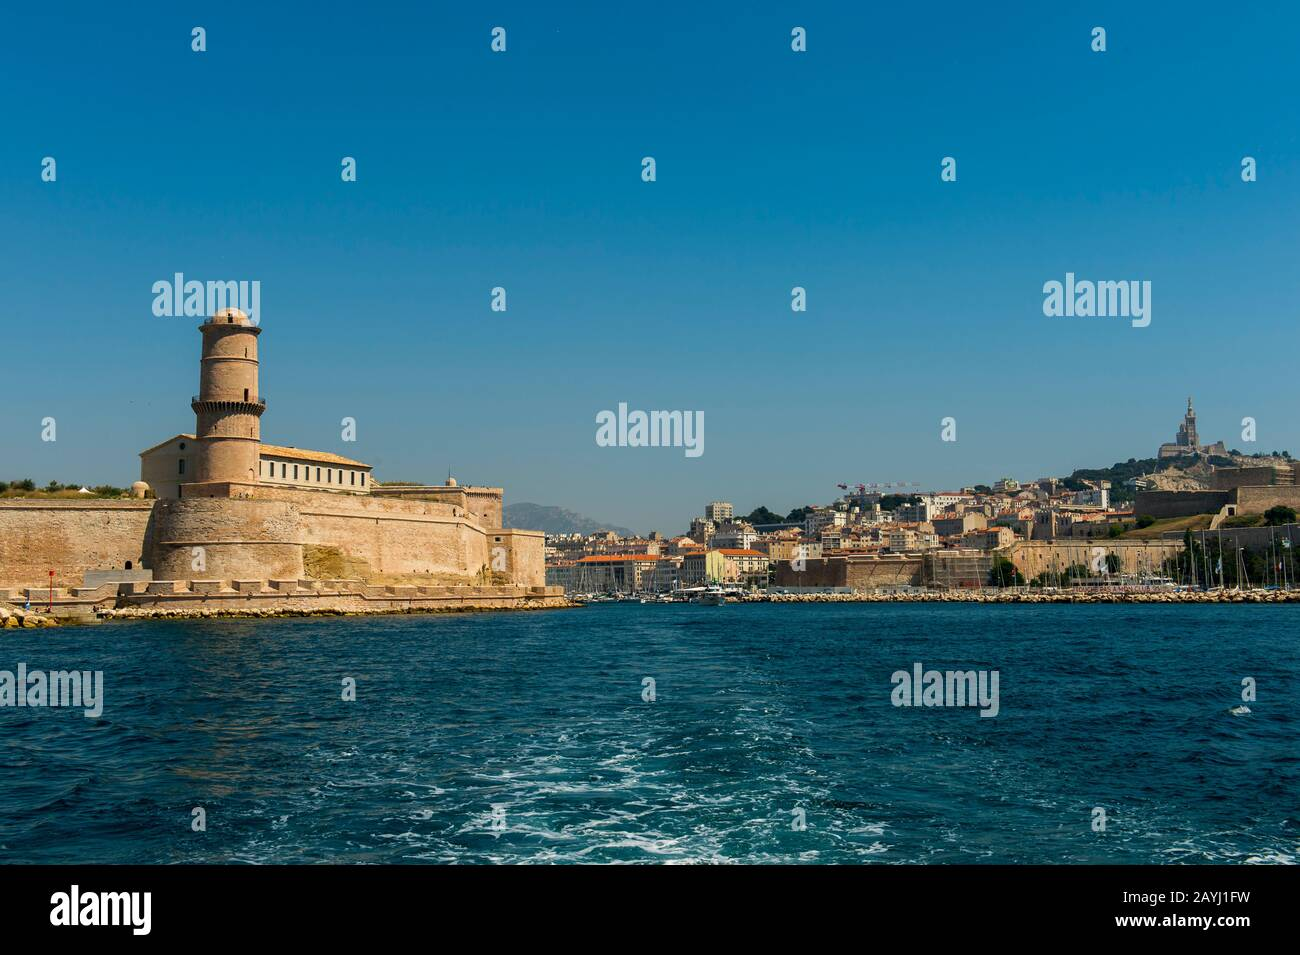 View from a boat of Fort St. Jean and the entrance to the Vieux Port (old port) in Marseille, France. Stock Photo